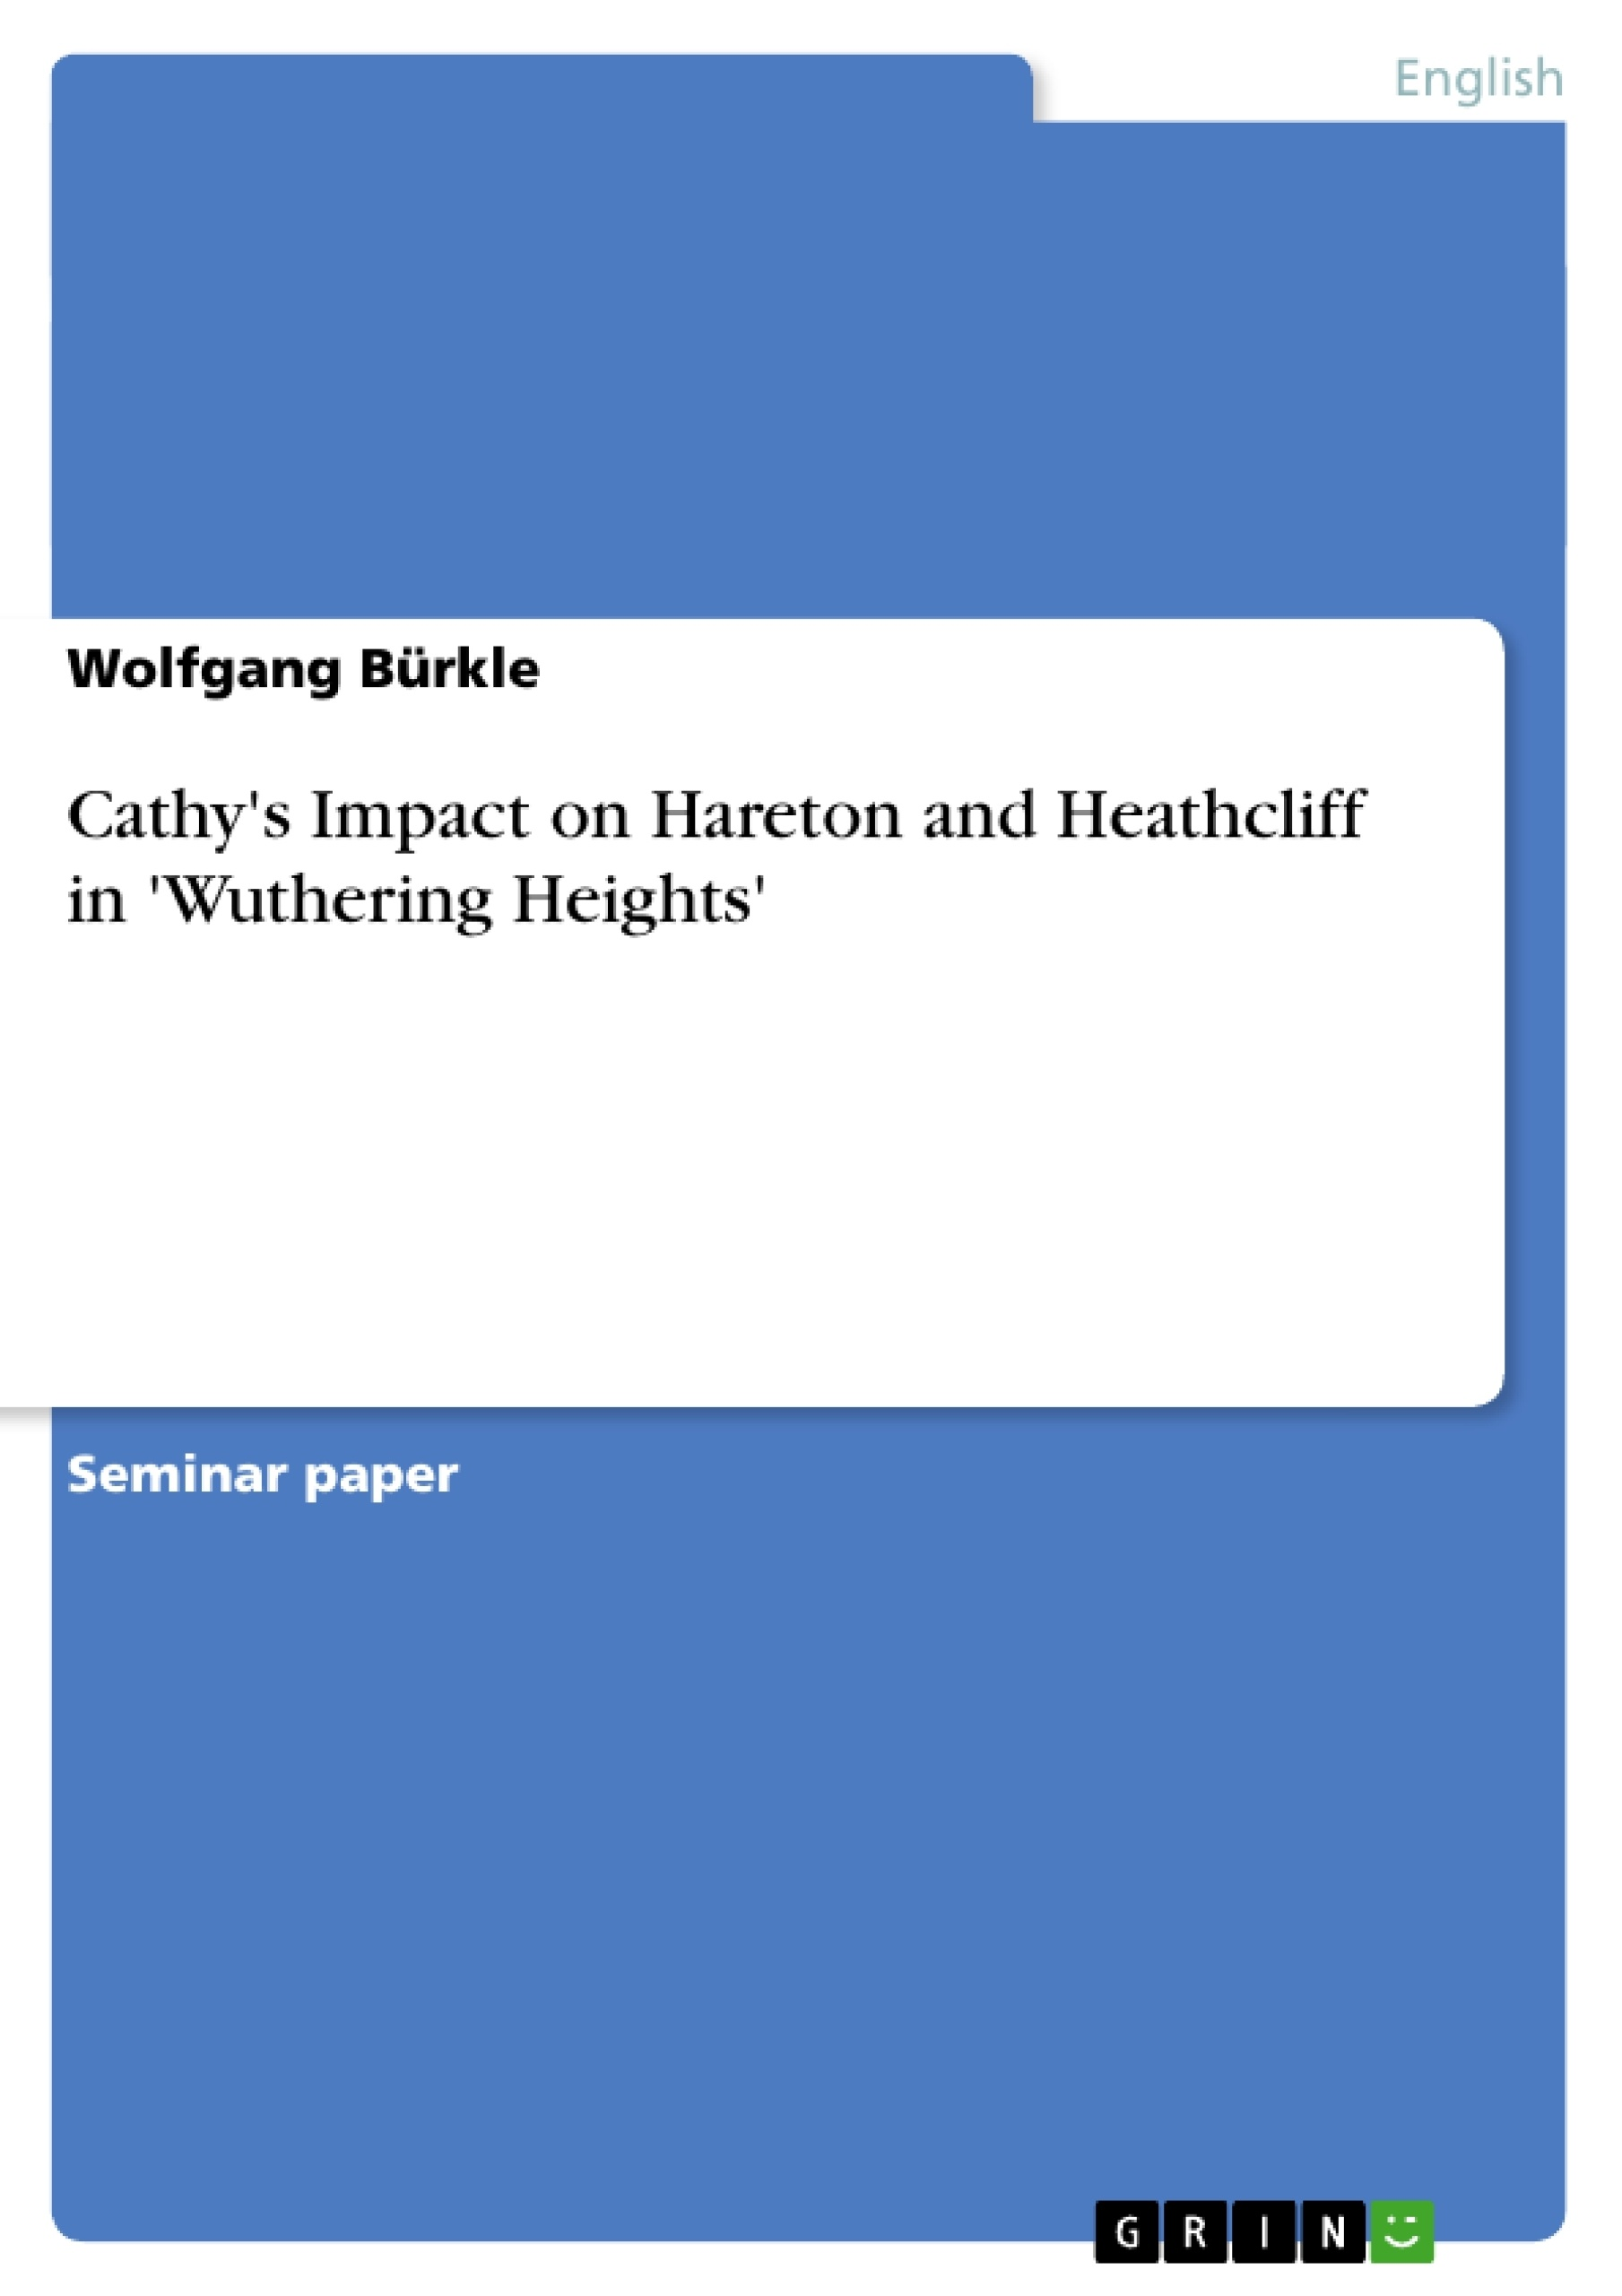 Title: Cathy's Impact on Hareton and Heathcliff in 'Wuthering Heights'